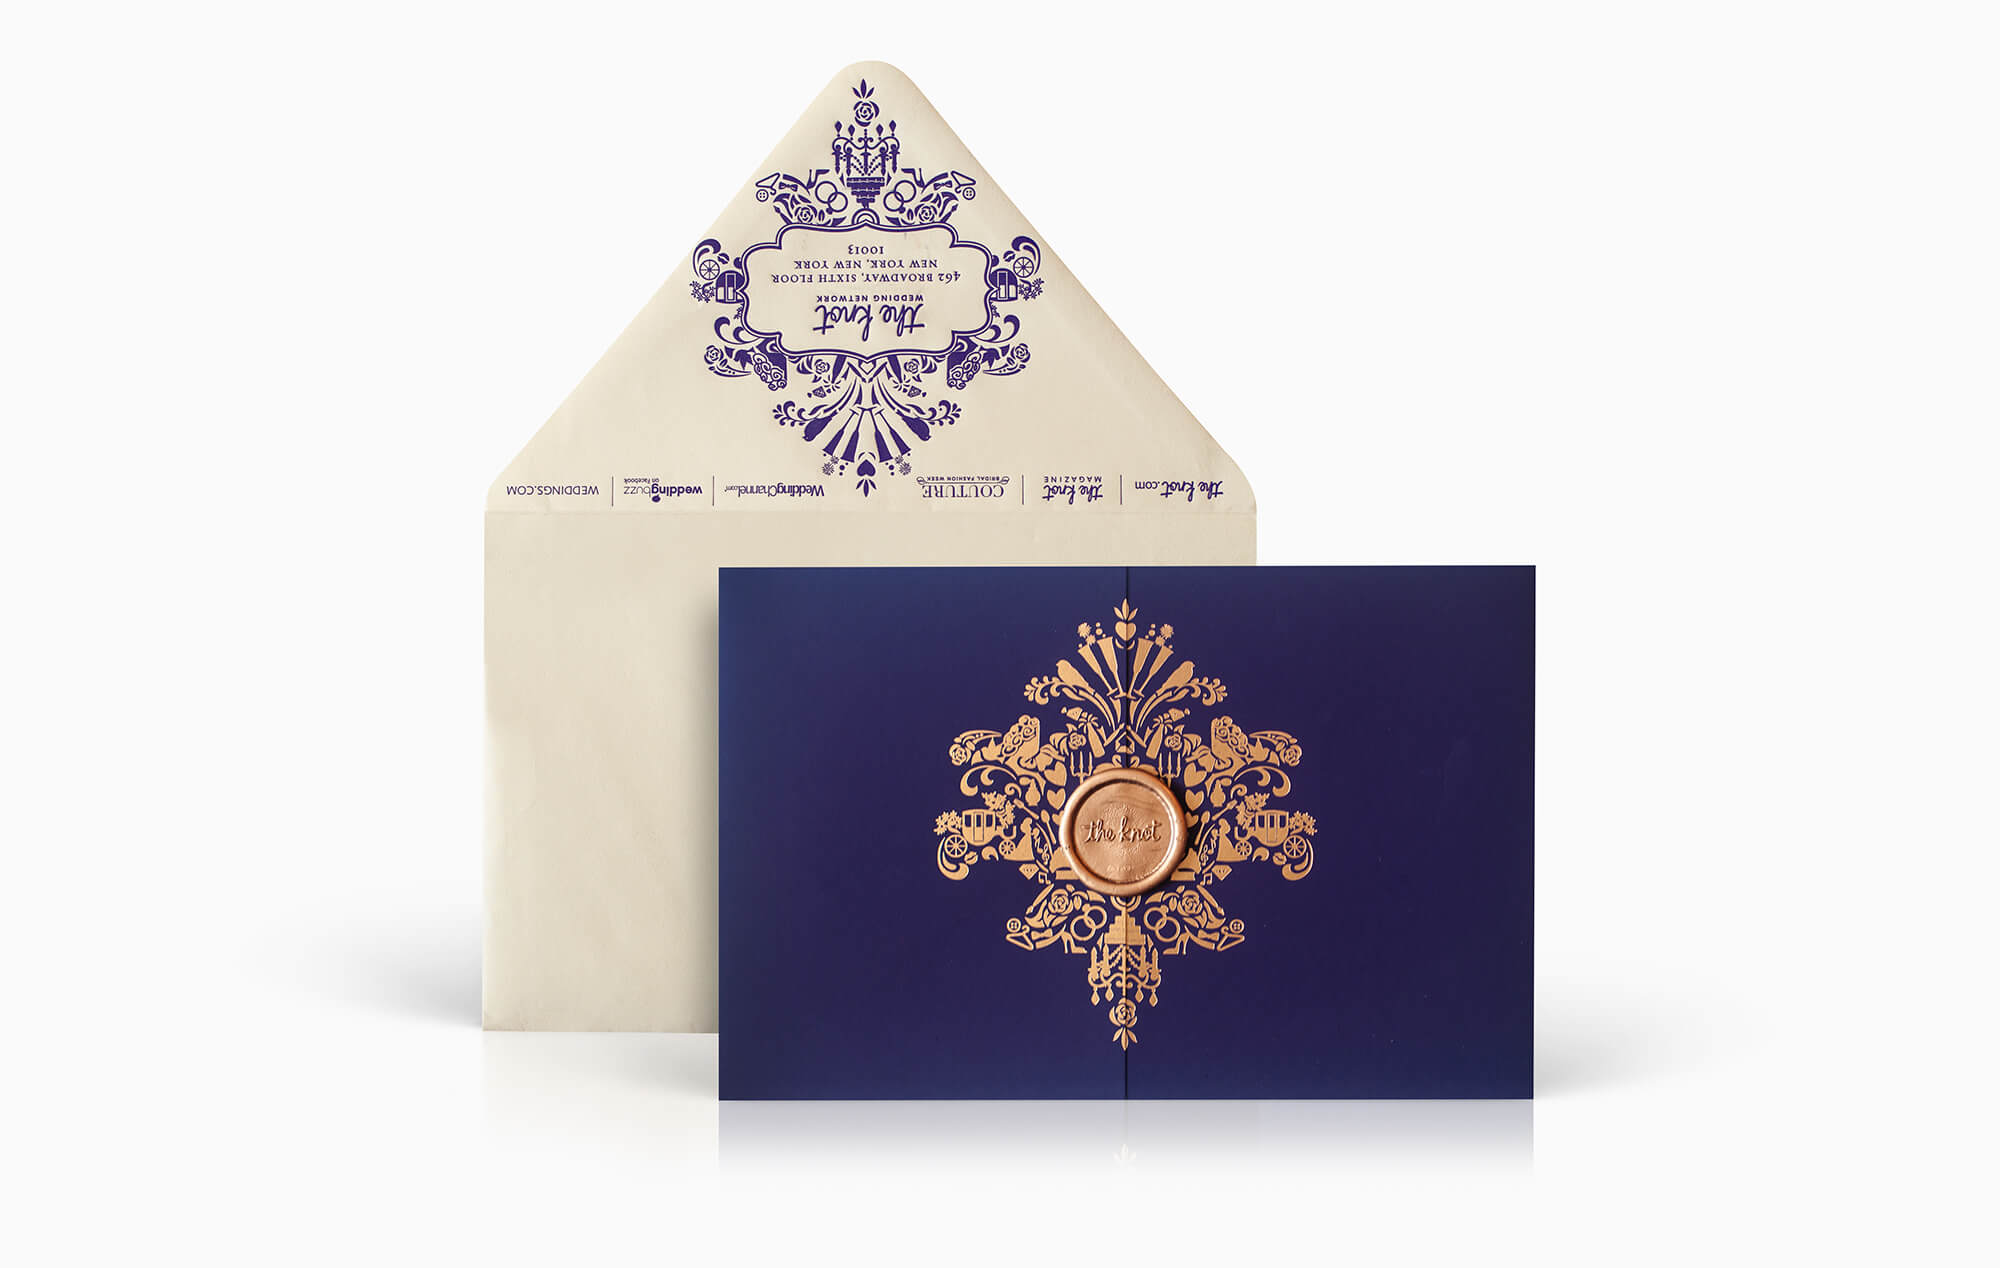 Purple and gold corporate event invitation